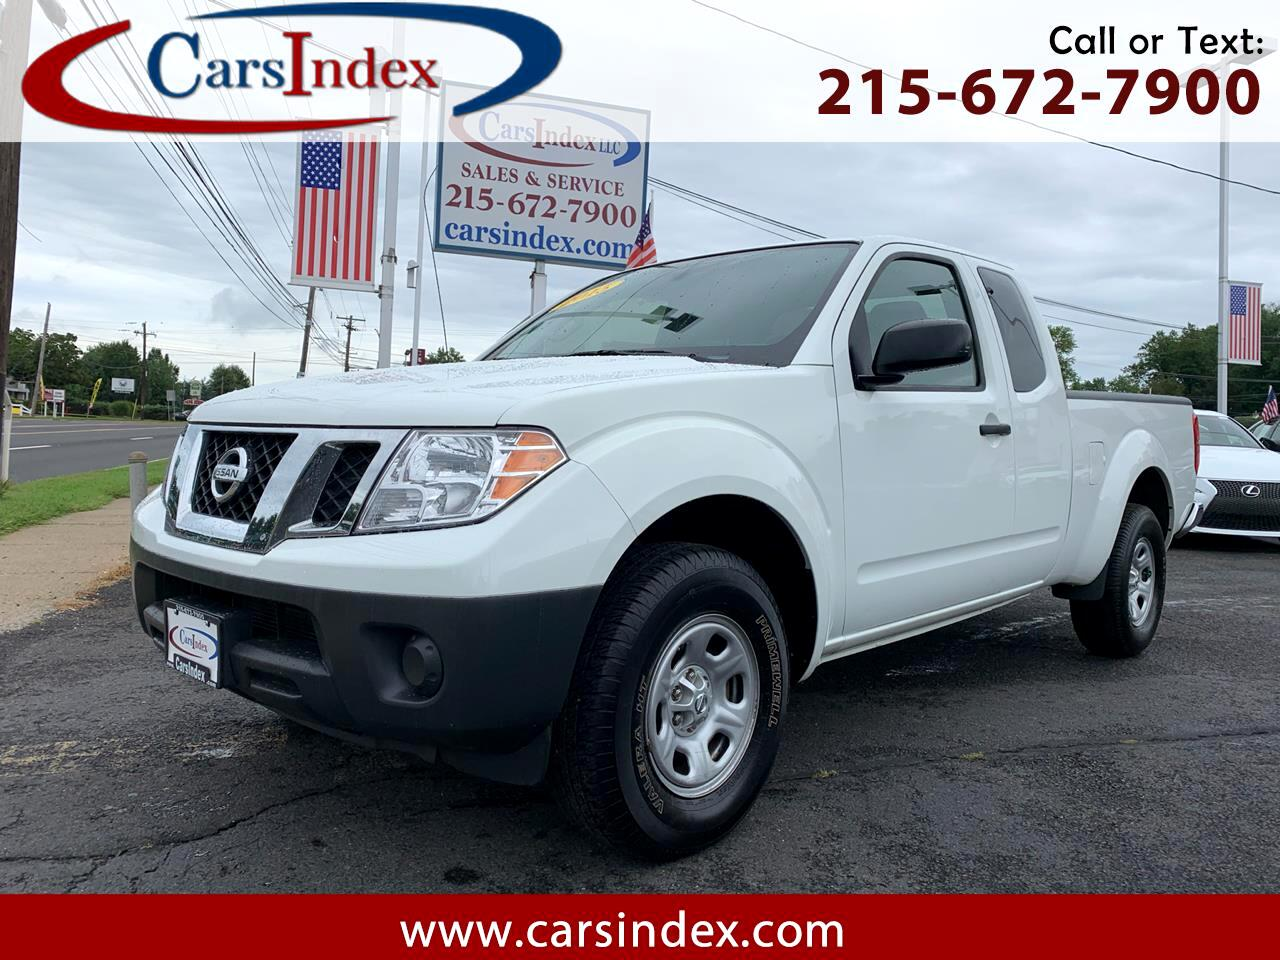 2015 Nissan Frontier 2WD King Cab I4 Manual S